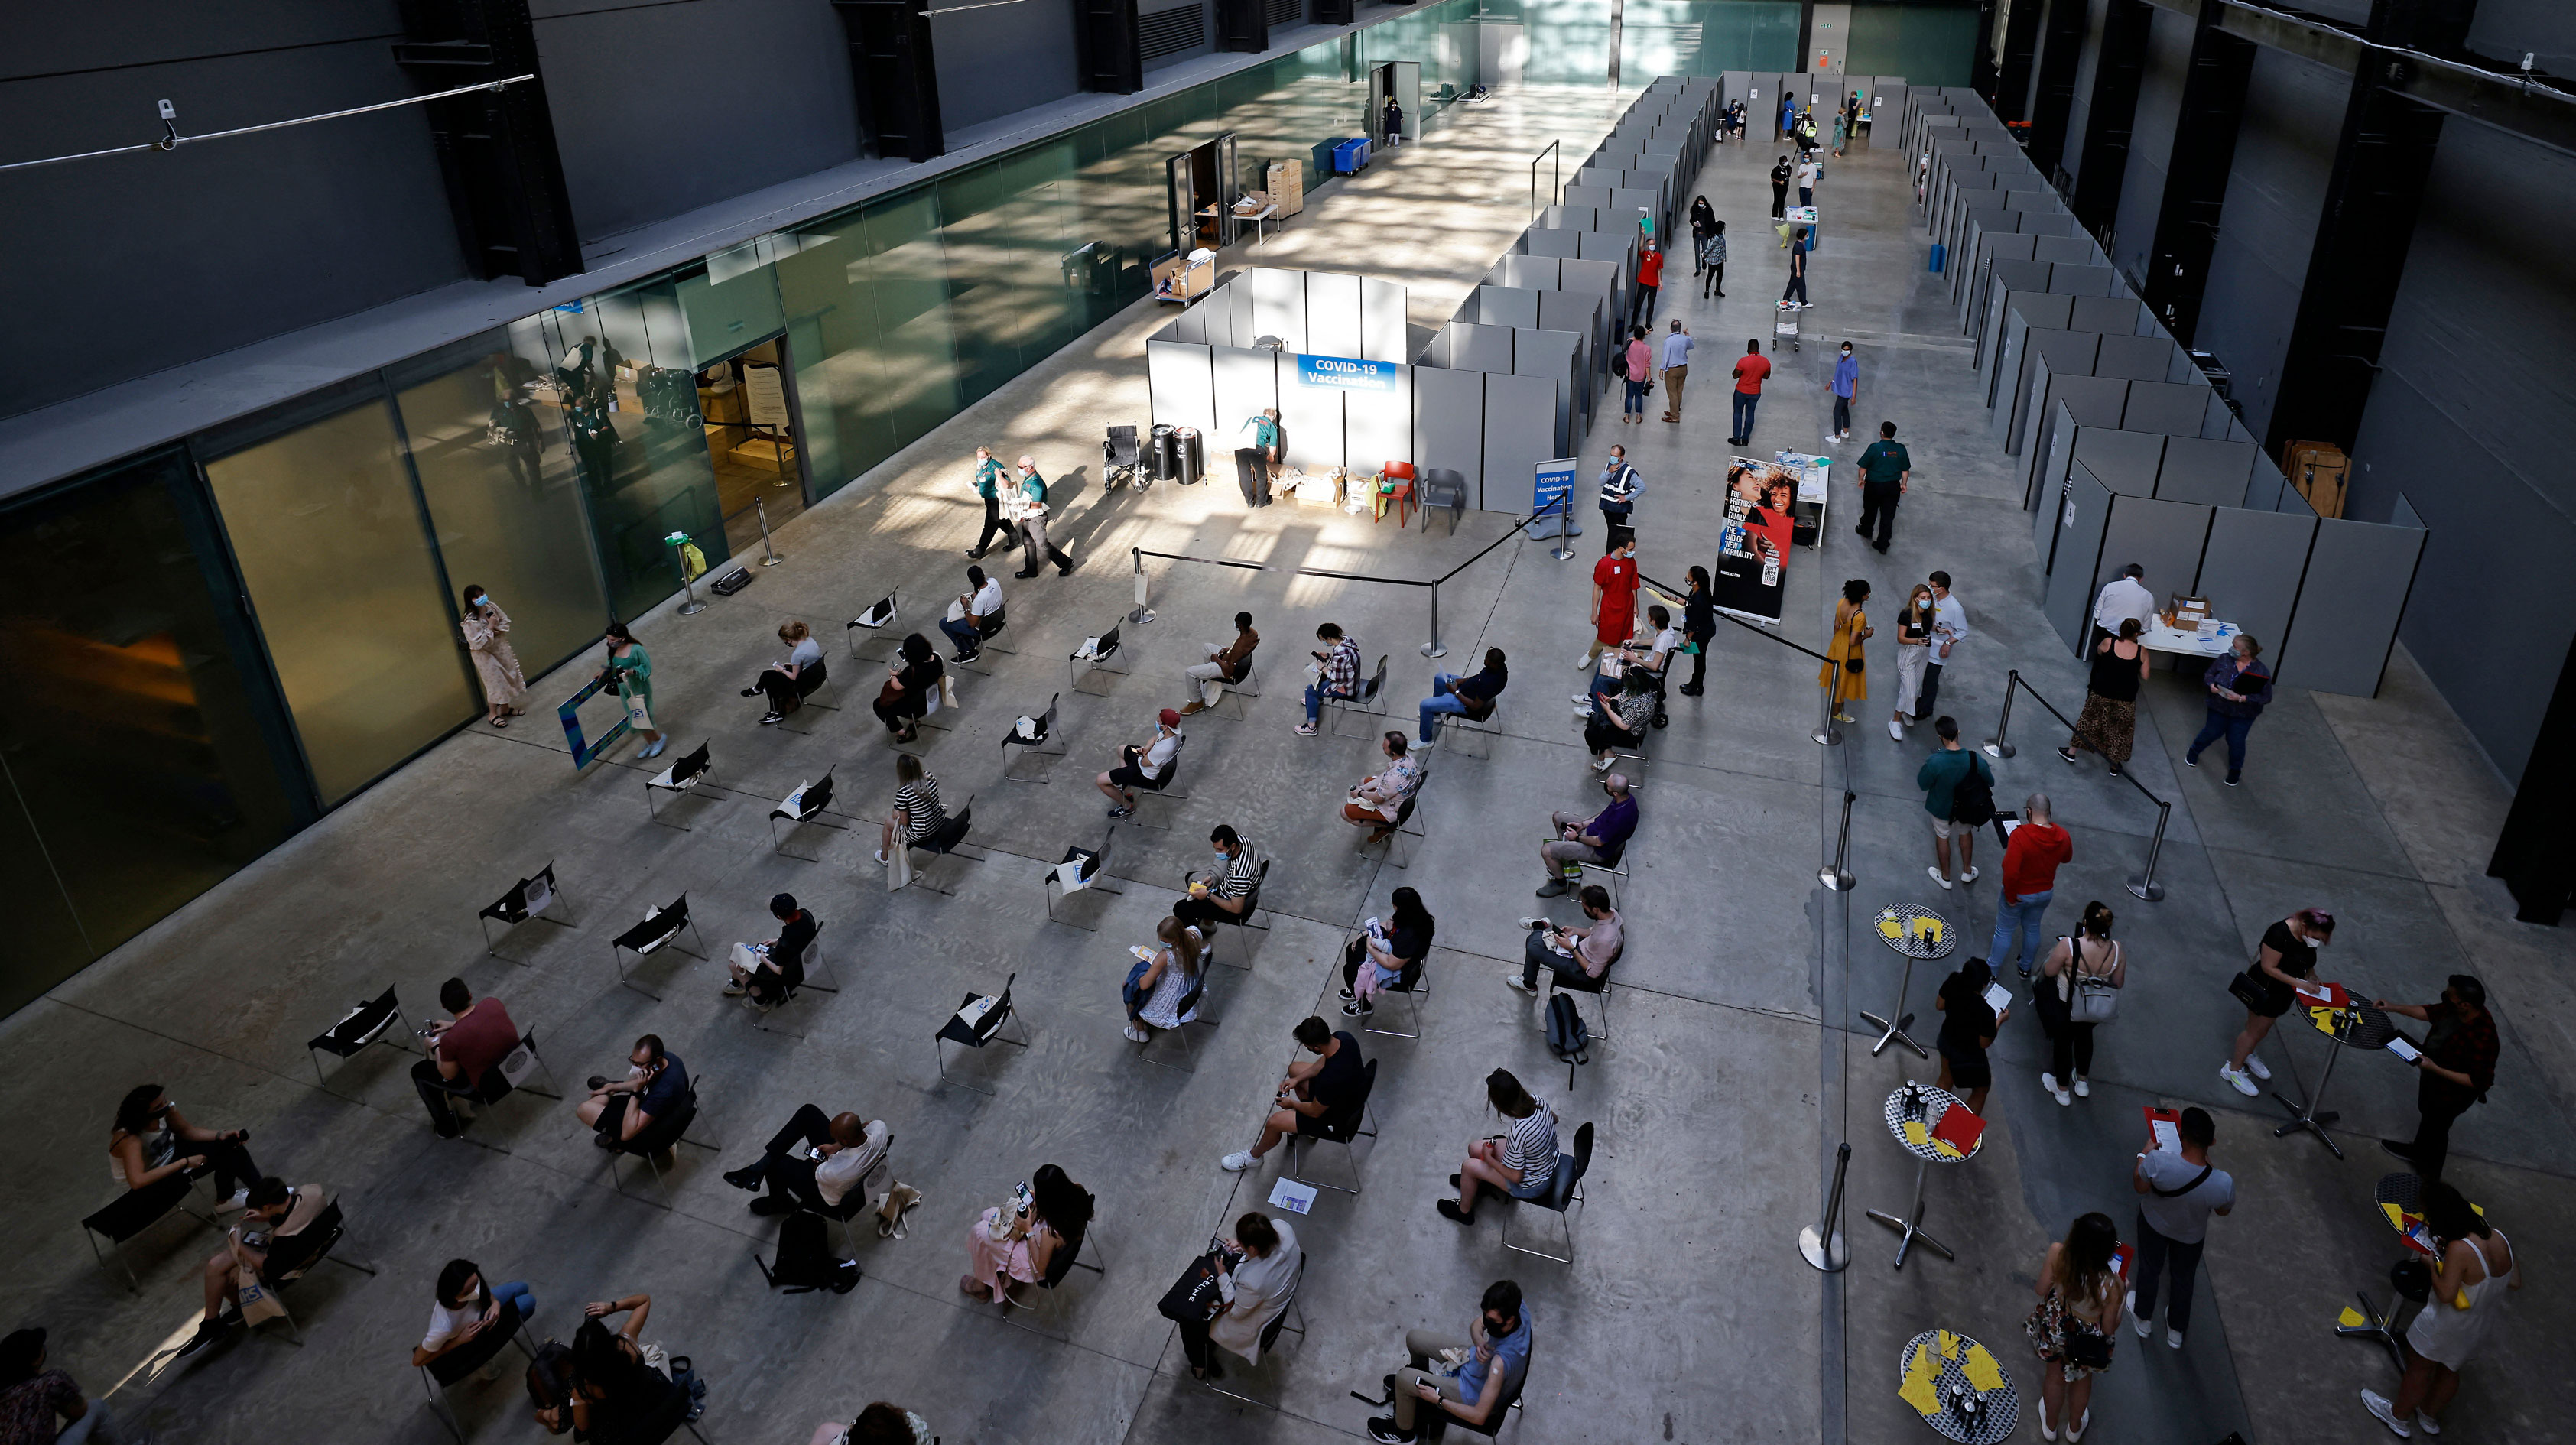 People wait on socially distanced chairs to receive the Pfizer-BioNTech Covid-19 vaccine at a temporary vaccination center at the Tate Modern in central London on Friday, July 16.